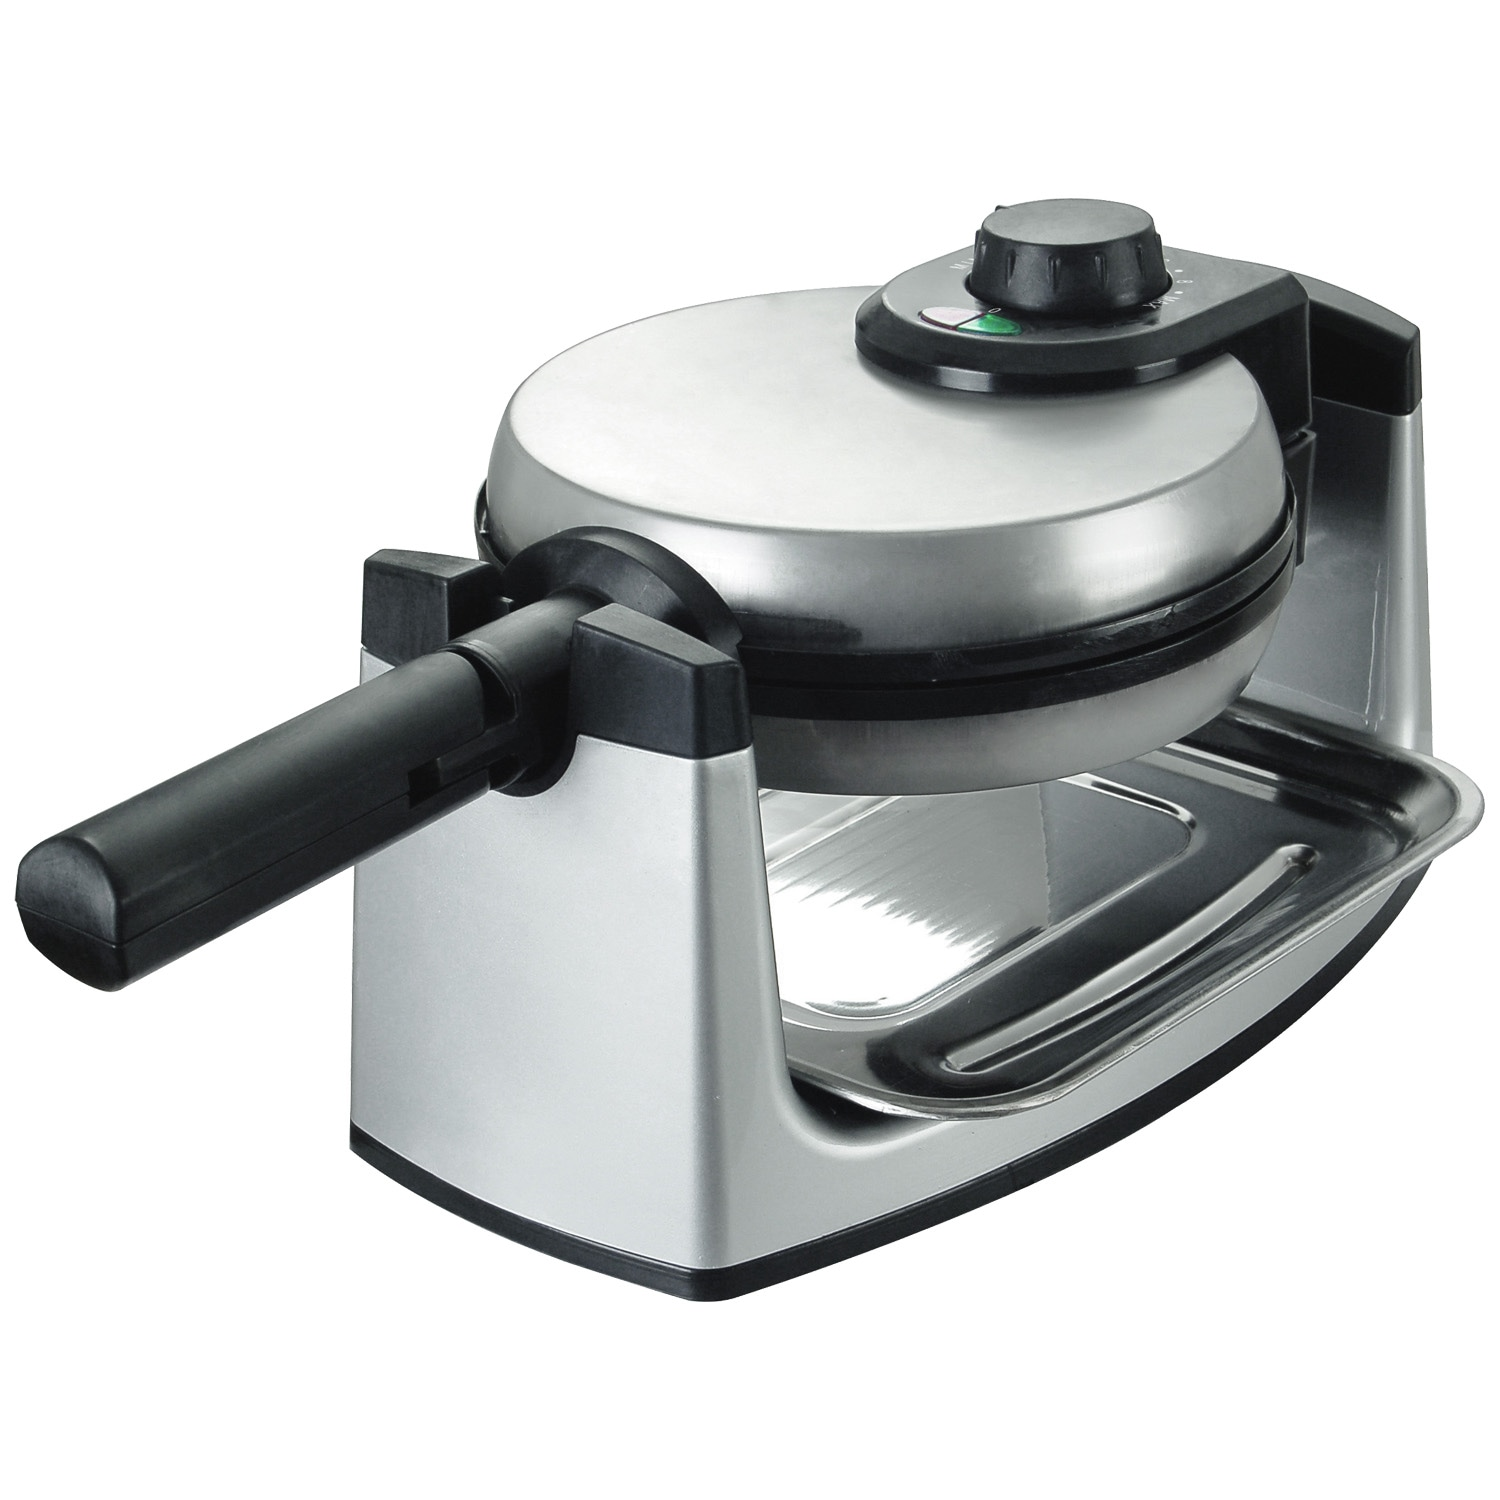 Kalorik Stainless Steel/ Black Waffle Maker at Sears.com